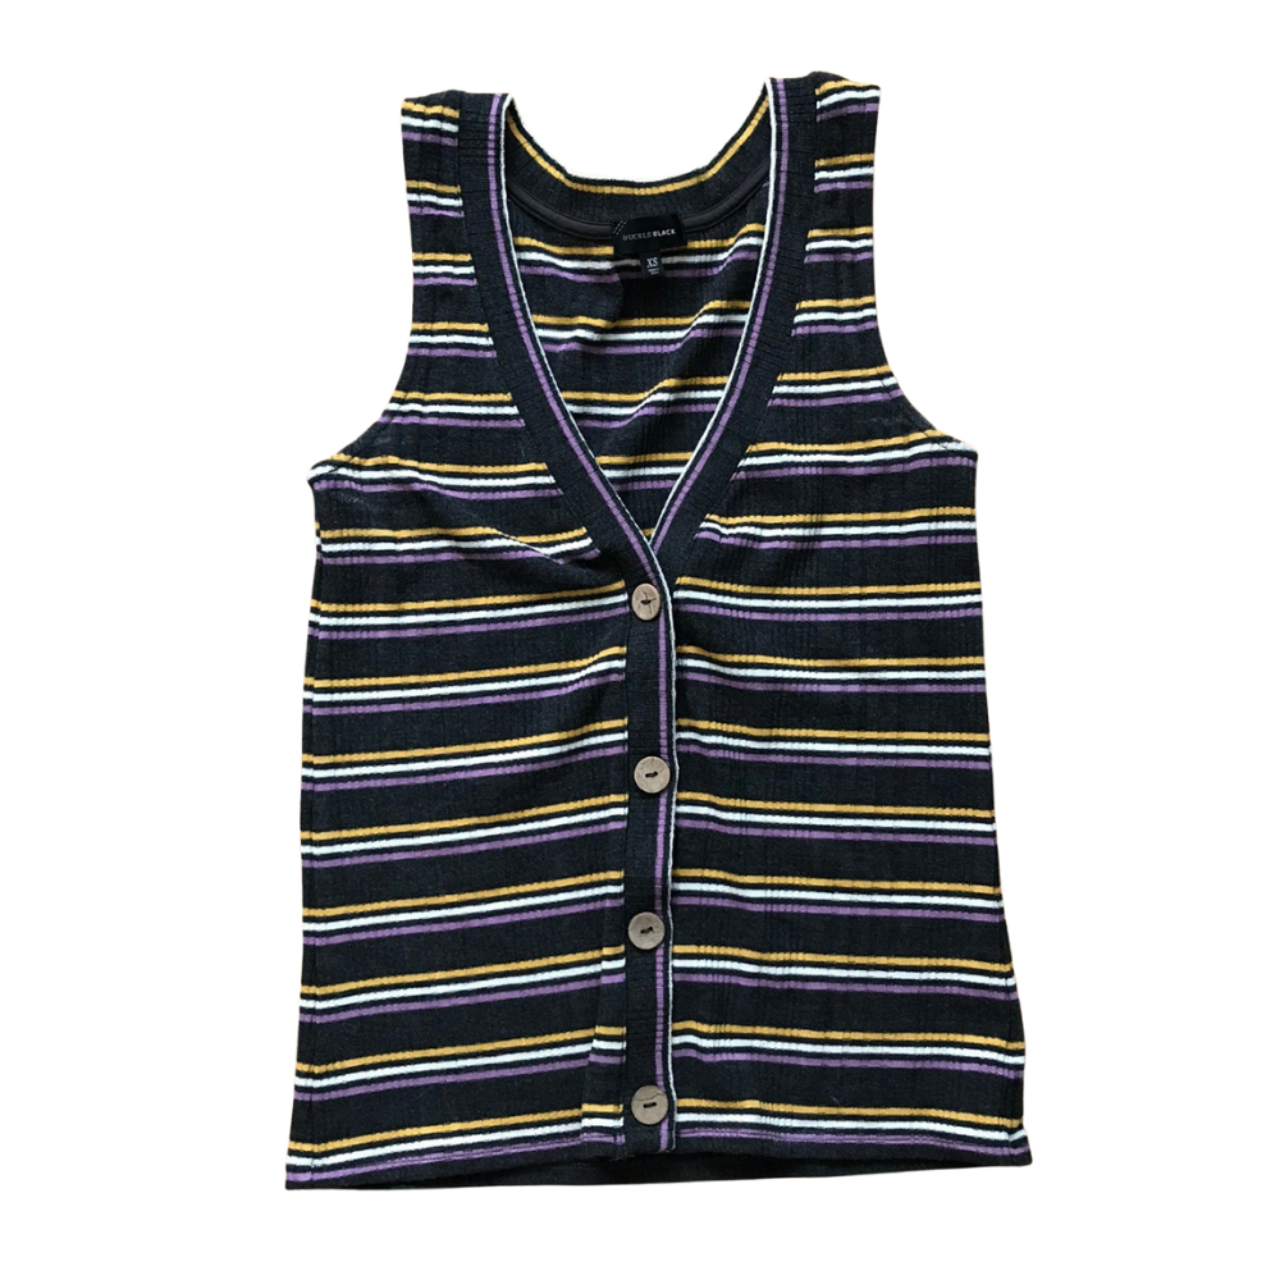 Product Image 1 - Buckle Black Striped Sleeveless Knit